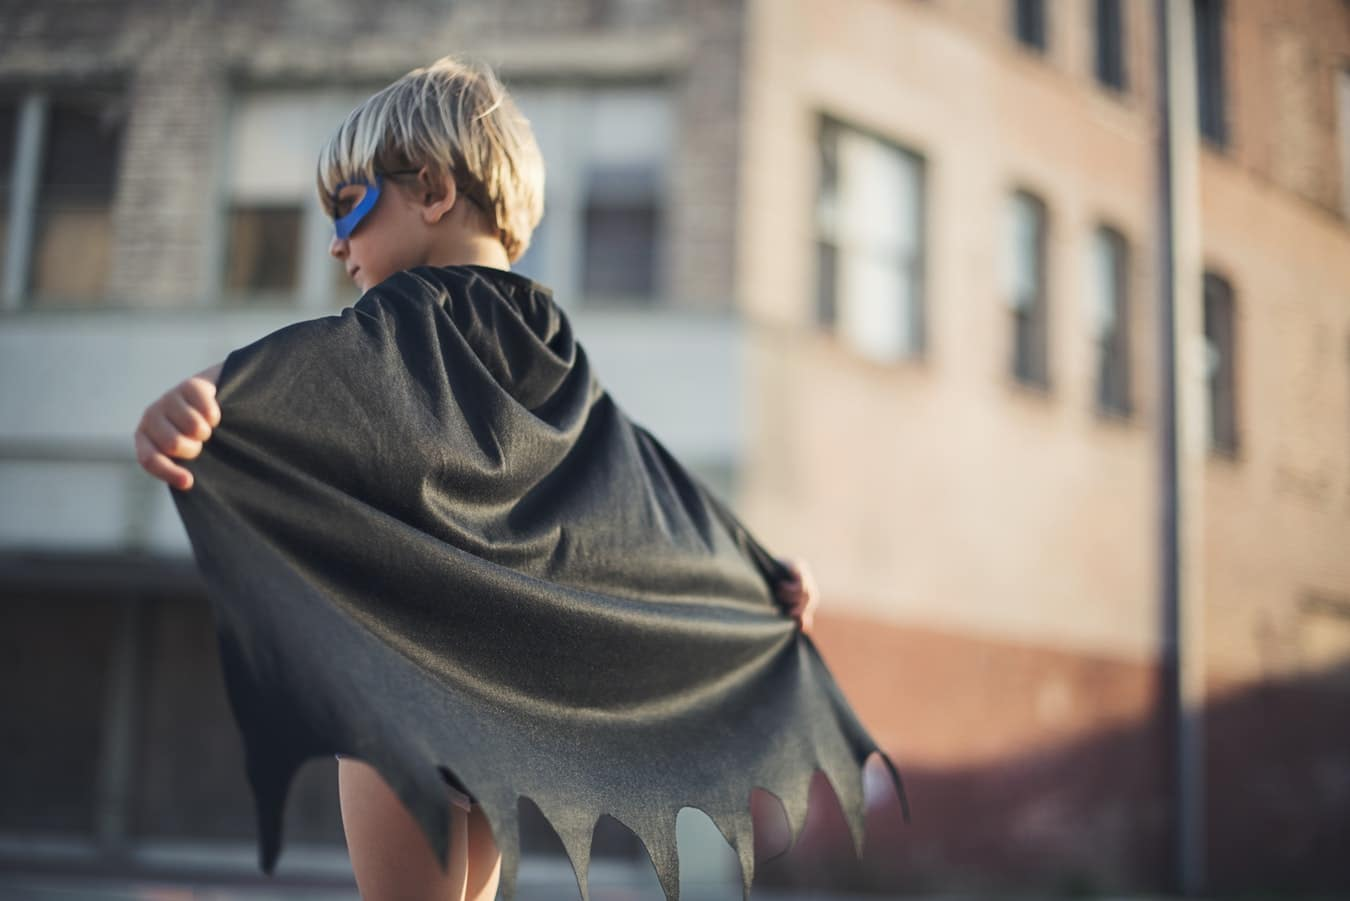 boy in a superhero costume with cape and mask